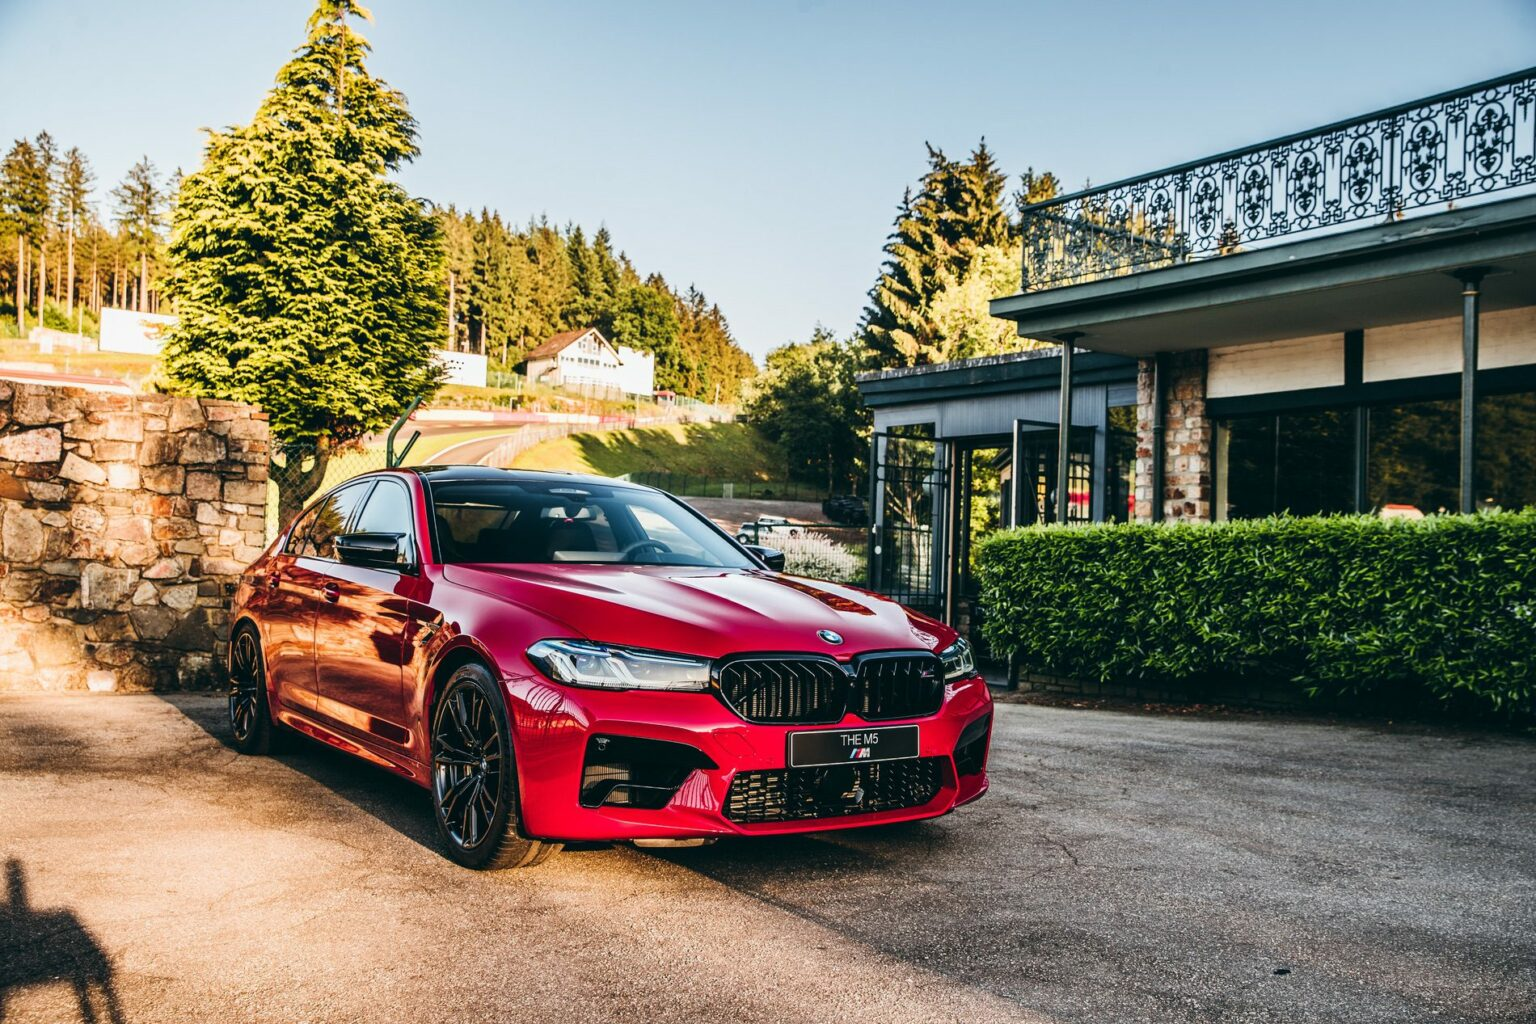 BMW M5 Facelift Imola Red 13 1536x1024